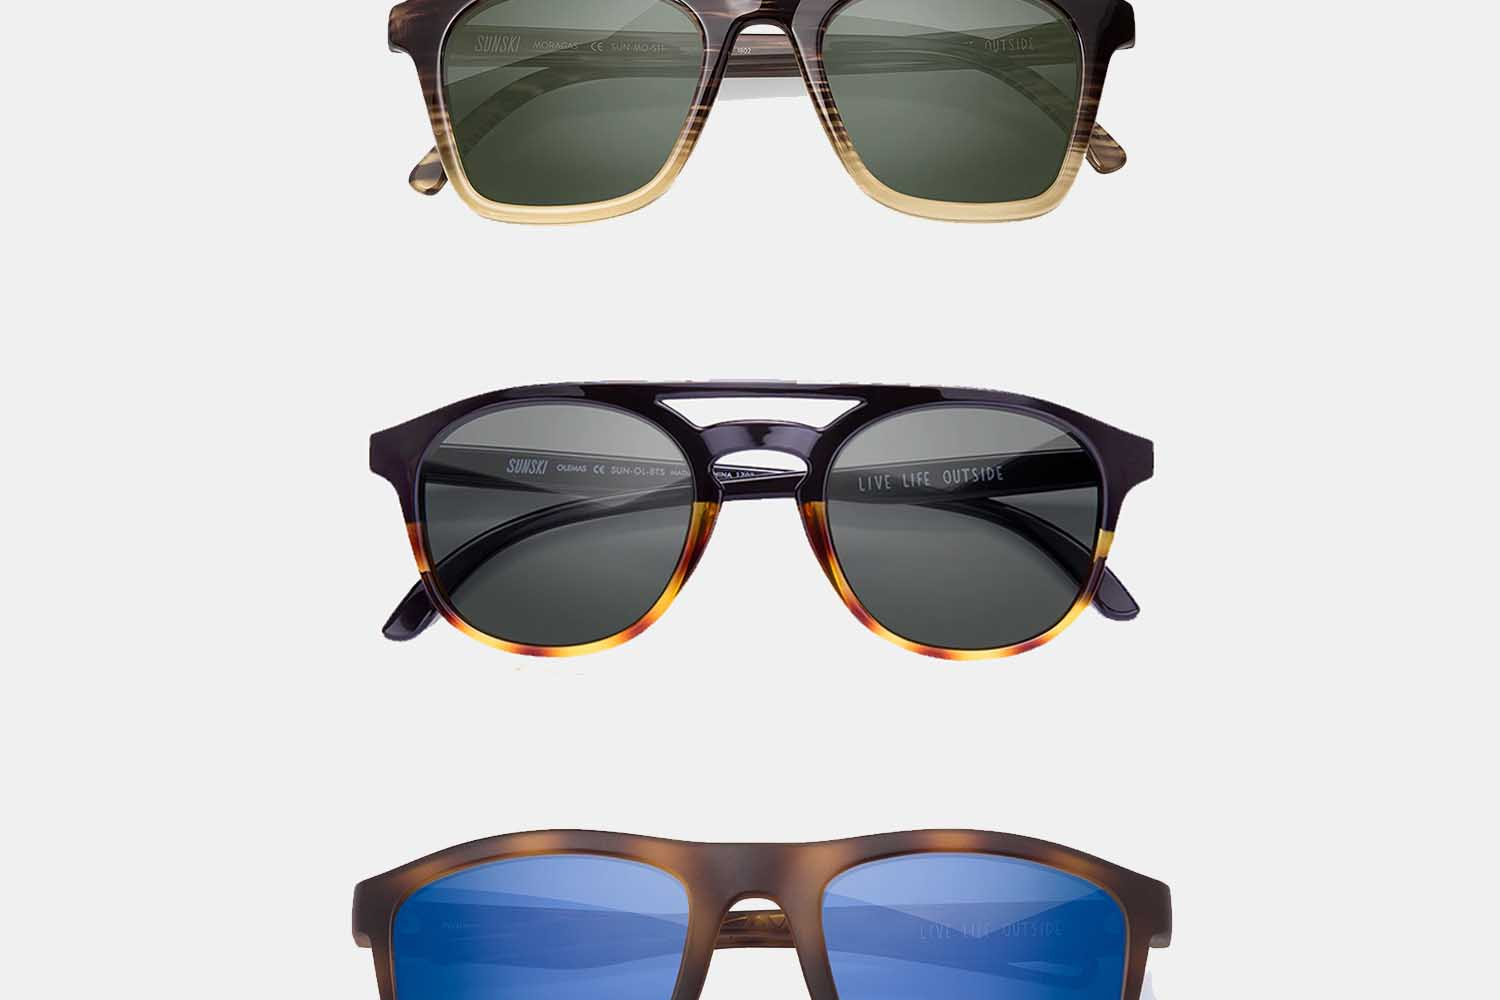 Deal: Grab a Pair of Stylish, Sustainable Sunglasses for Only $29